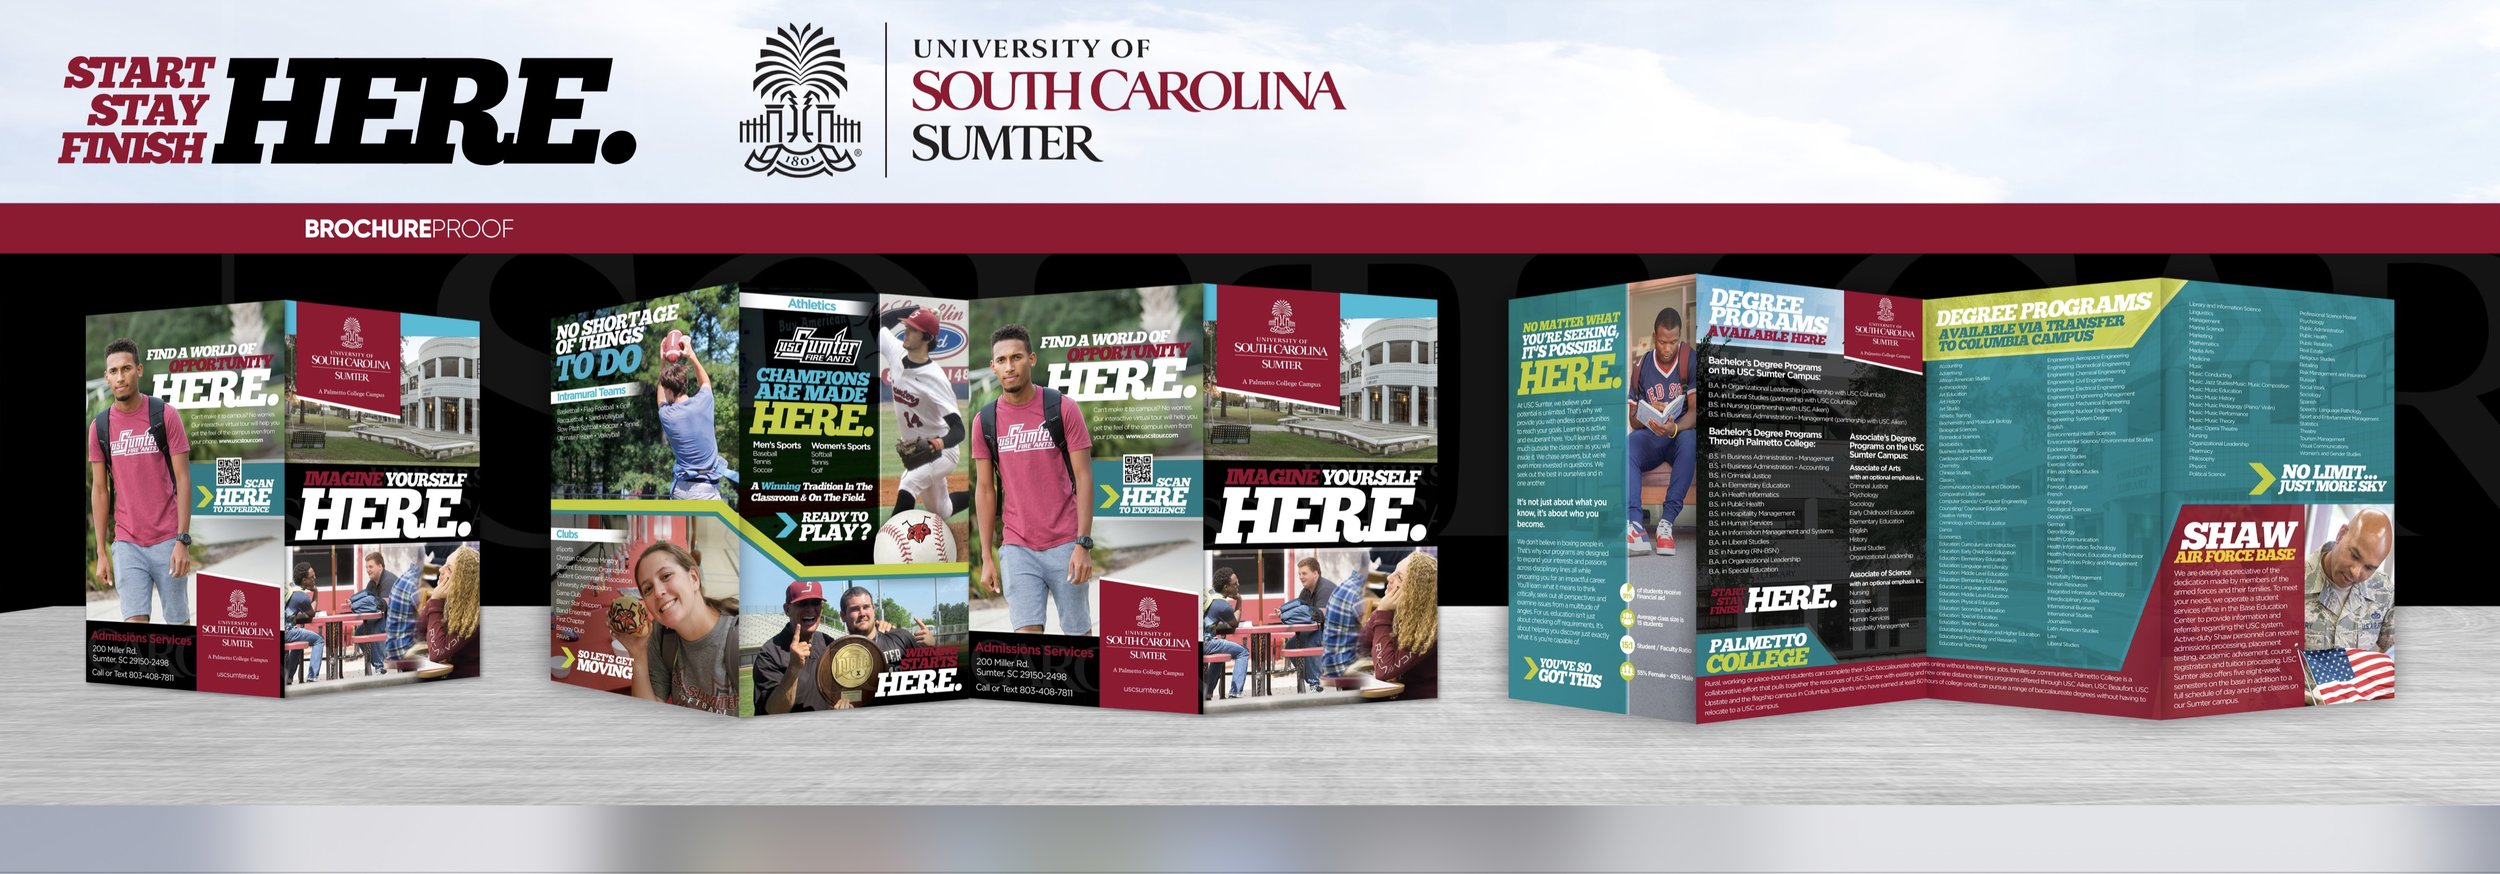 Student travel brochure designed for The University of South Carolina Sumter used in recruitment.